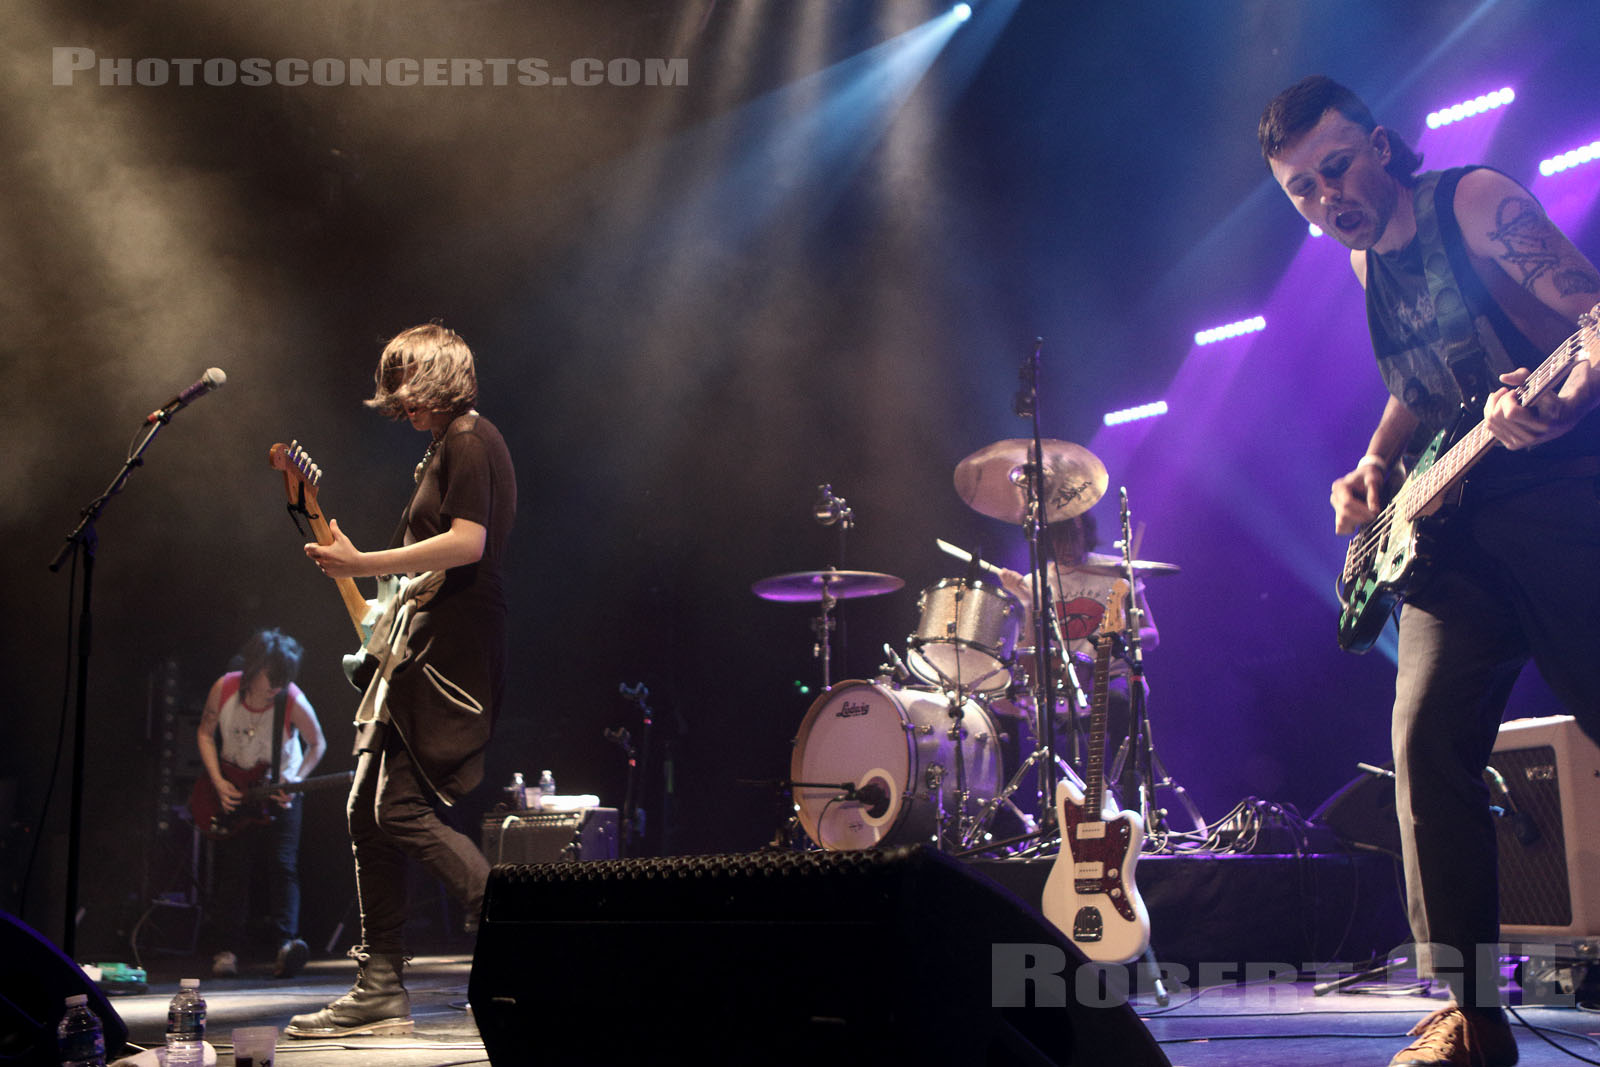 DILLY DALLY - 2016-06-03 - NIMES - Paloma - Grande Salle